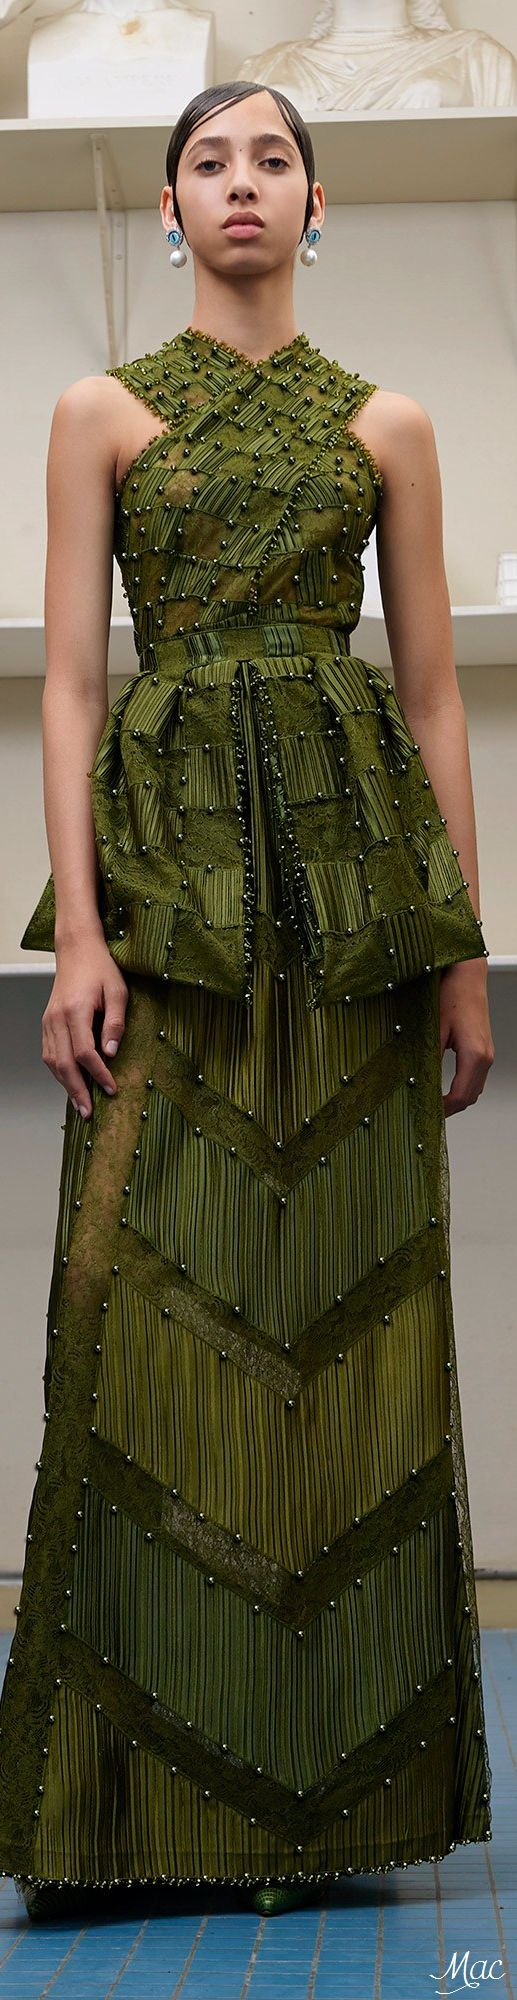 www.2locos.com Fall 2016 Haute Couture Givenchy